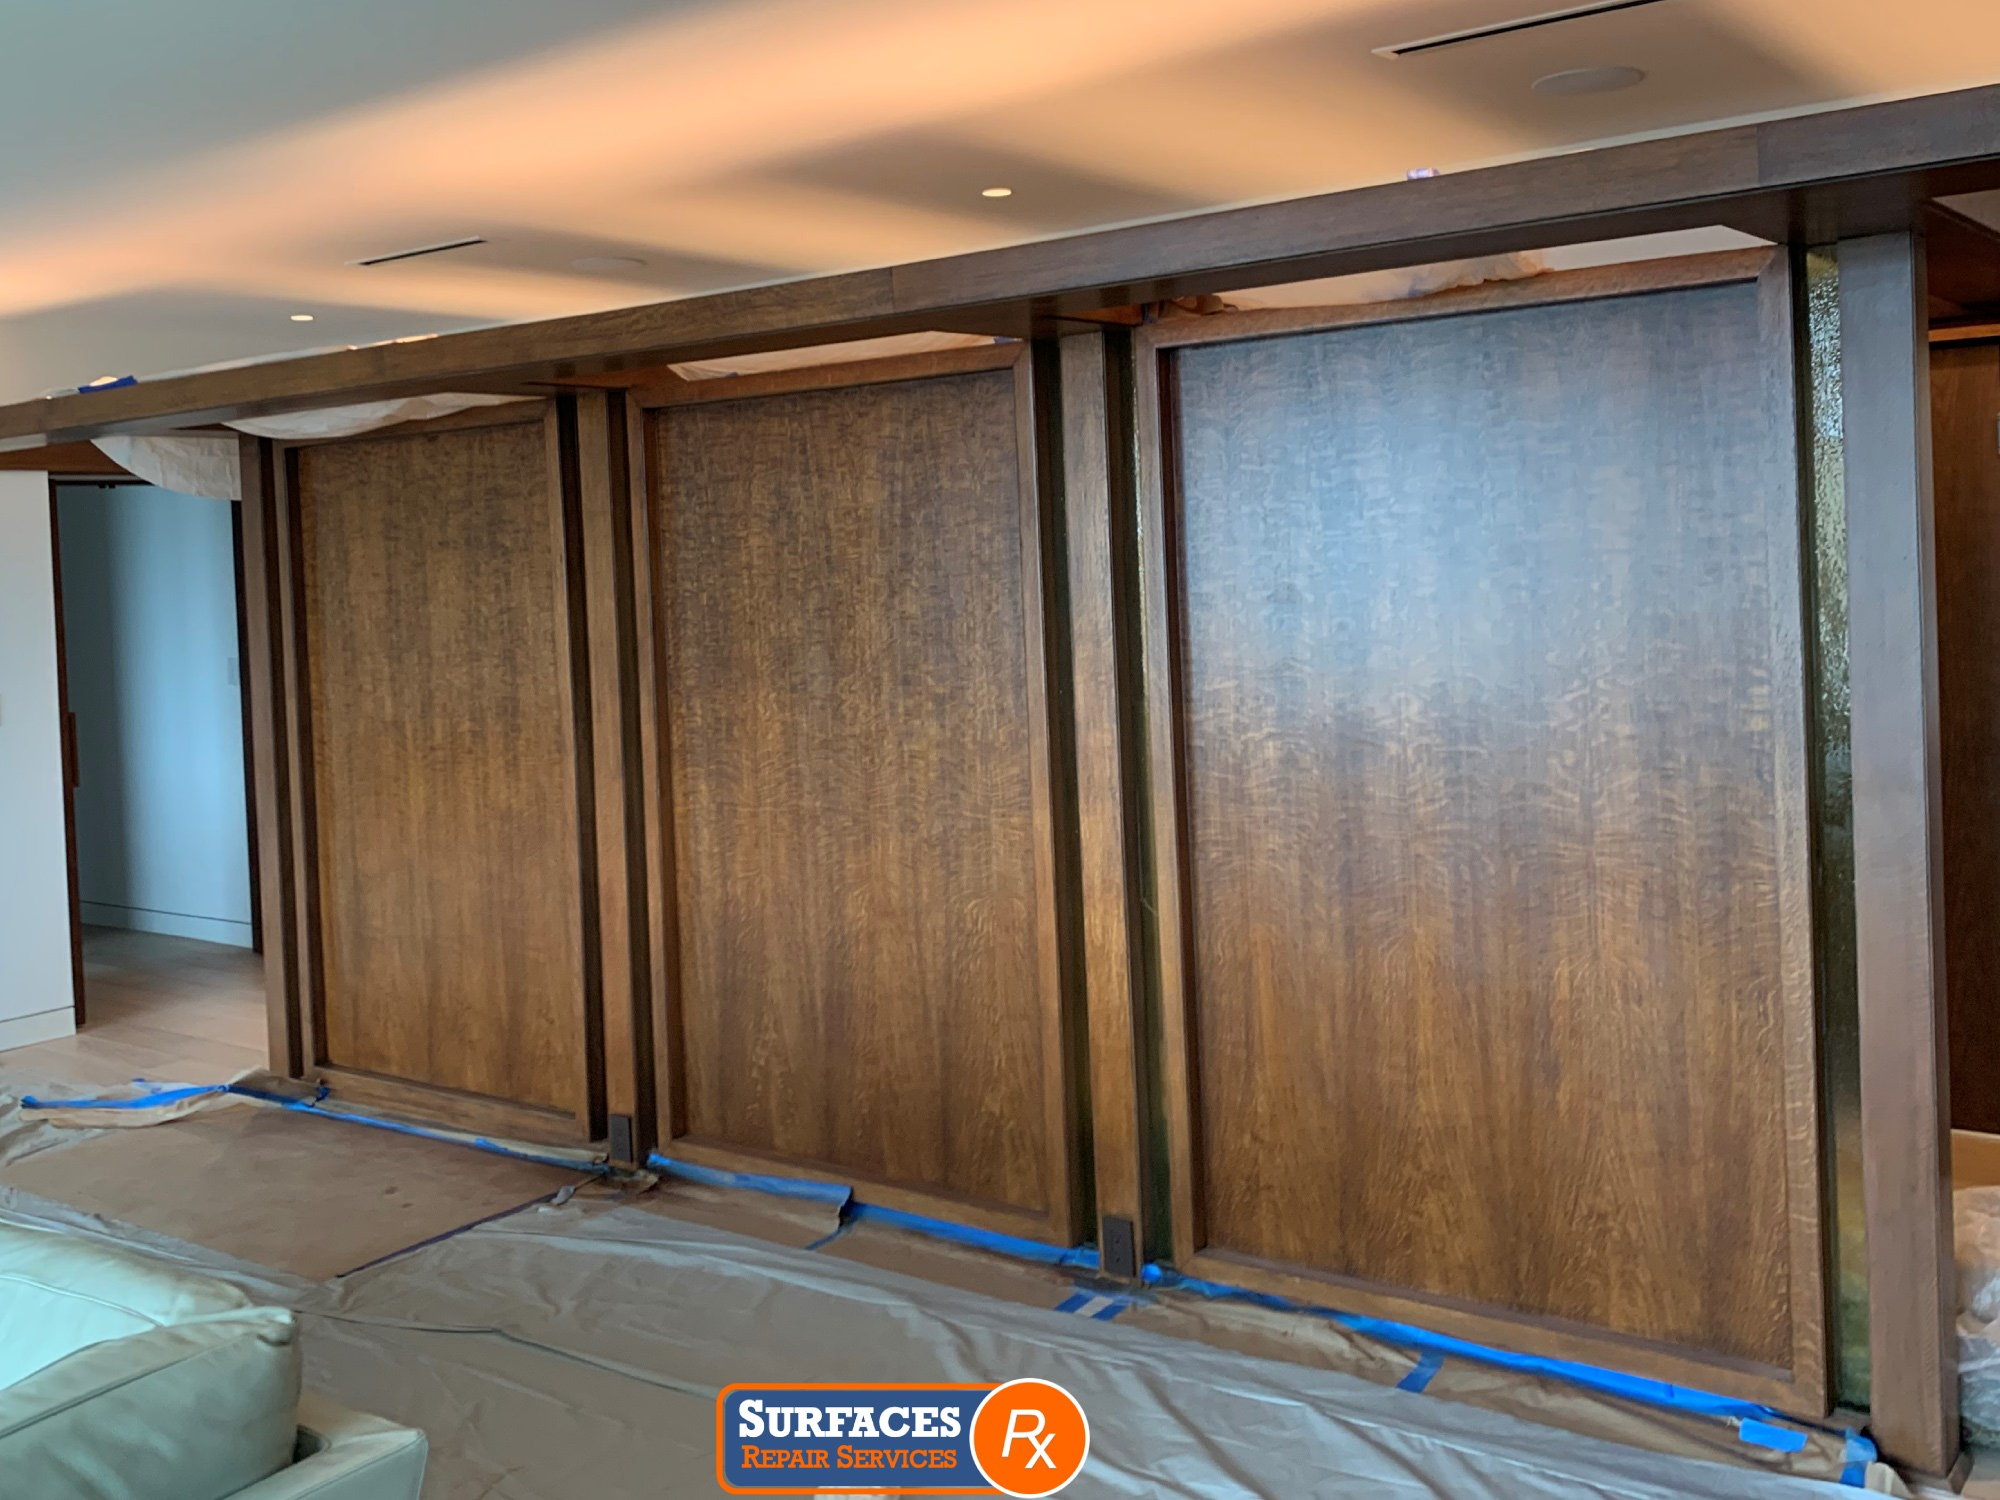 3525 Turtle Creek High-Rise Condo Millwork After Refinishing by Surfaces Rx